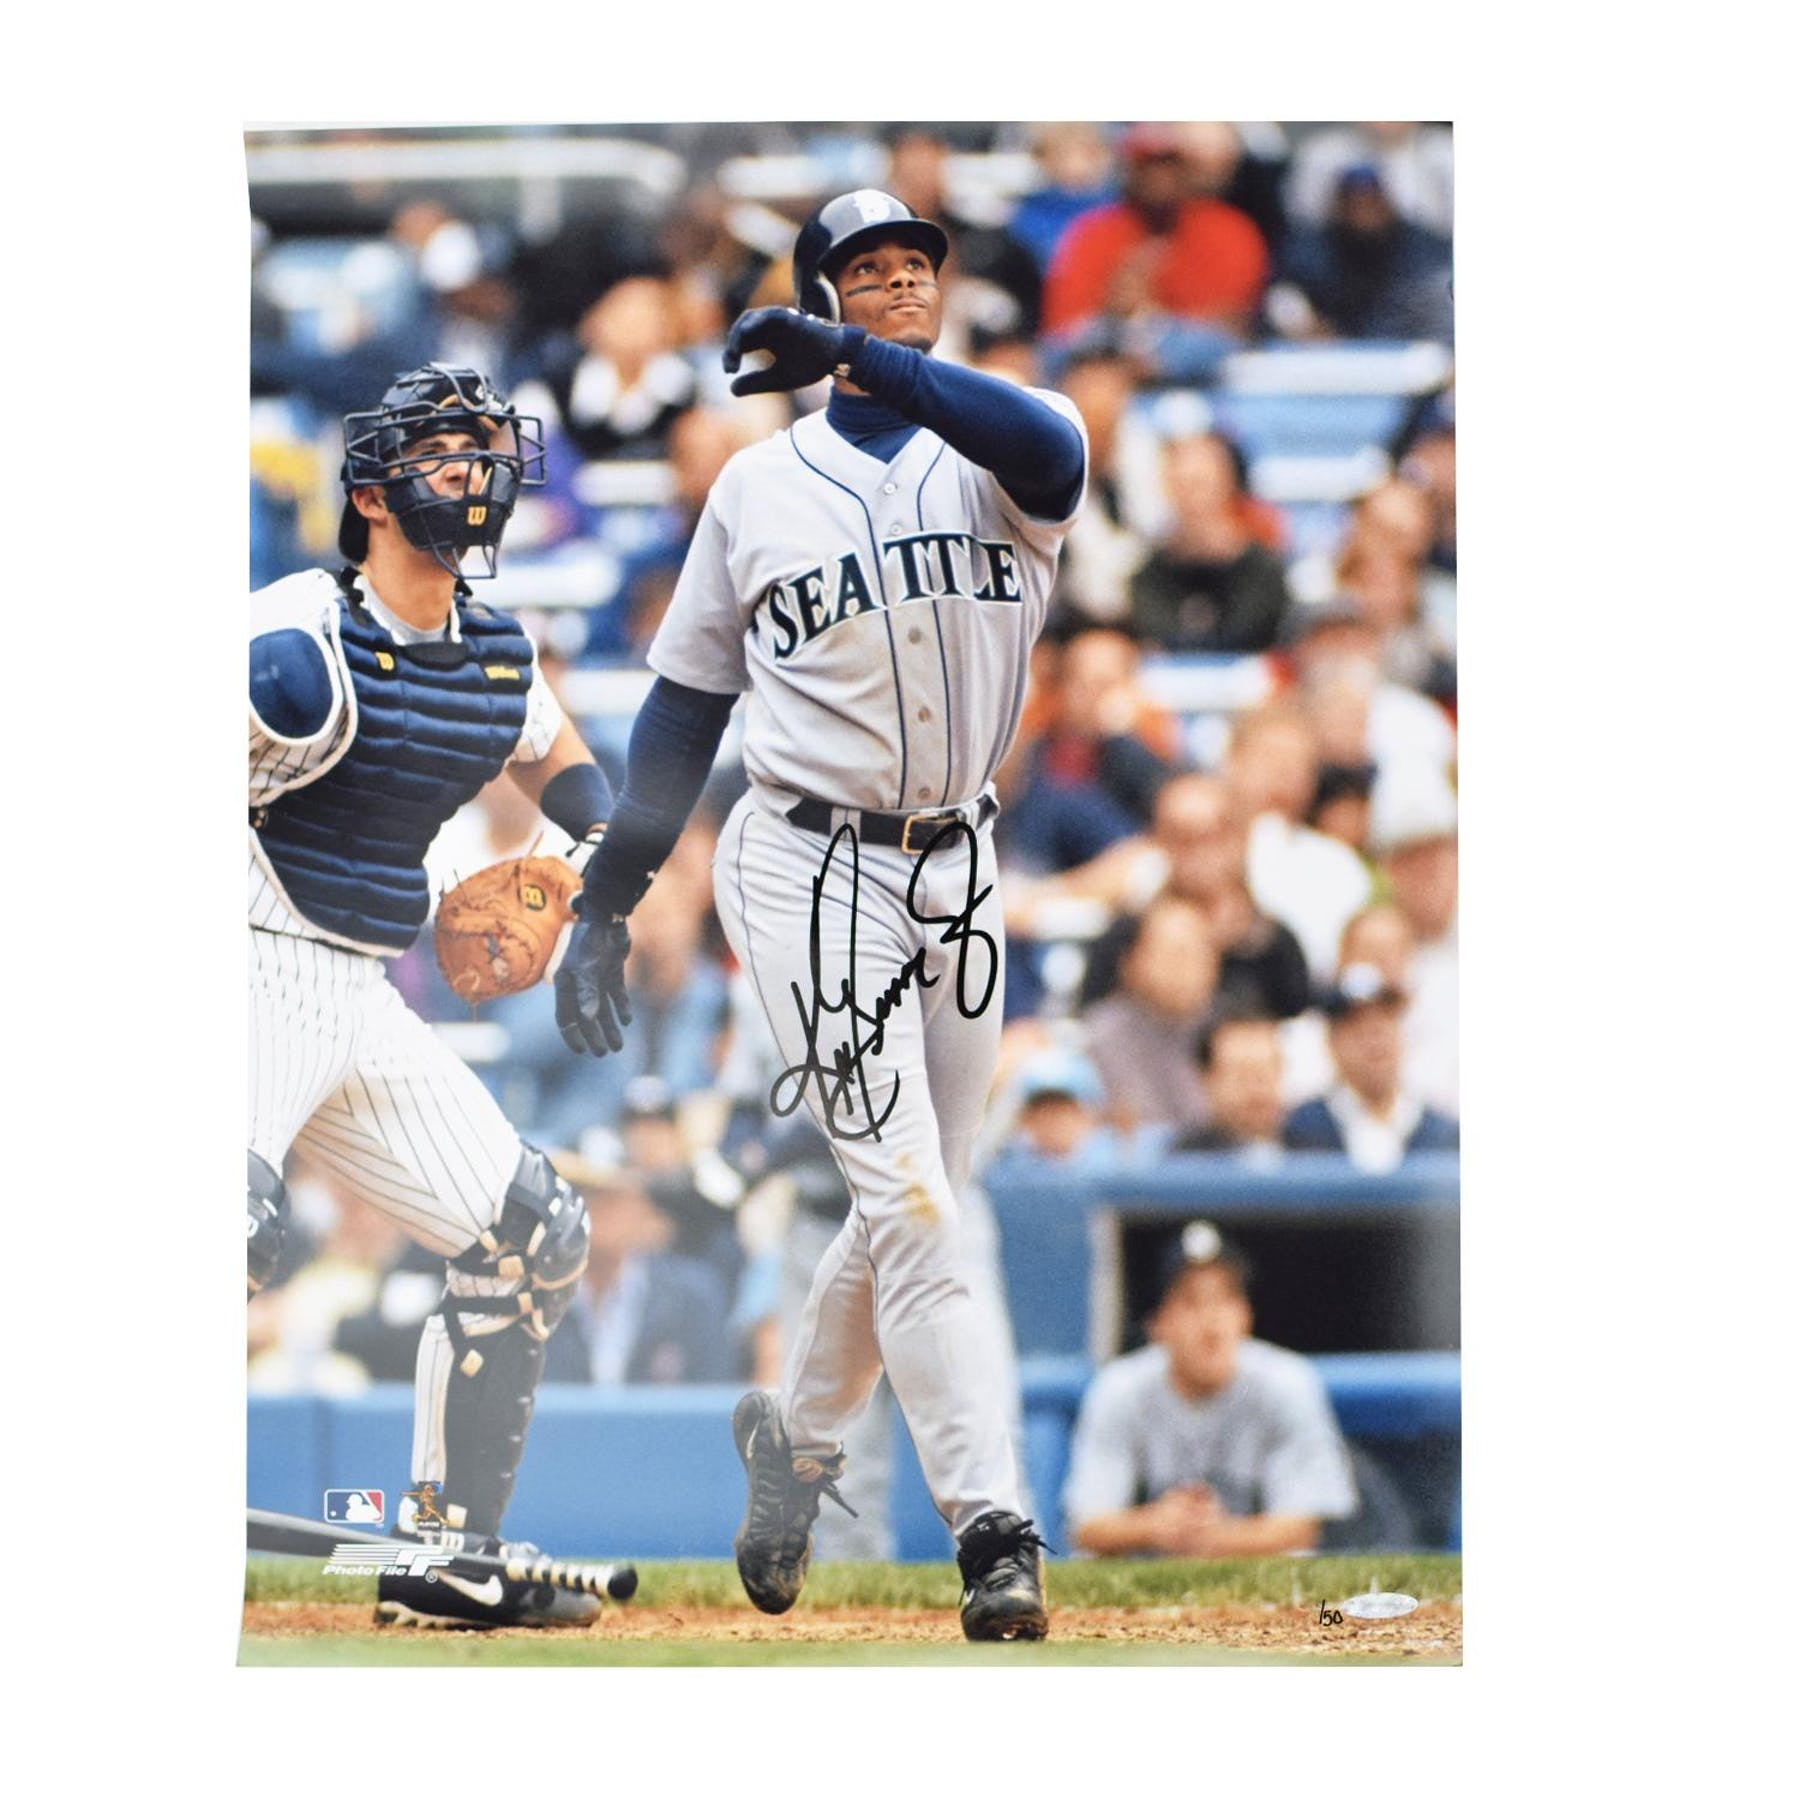 83a0ab7faf Ken Griffey Jr Seatlle Mariners UDA Autographed Stadium 16 x 20 Photo LE  /50 | DA Card World